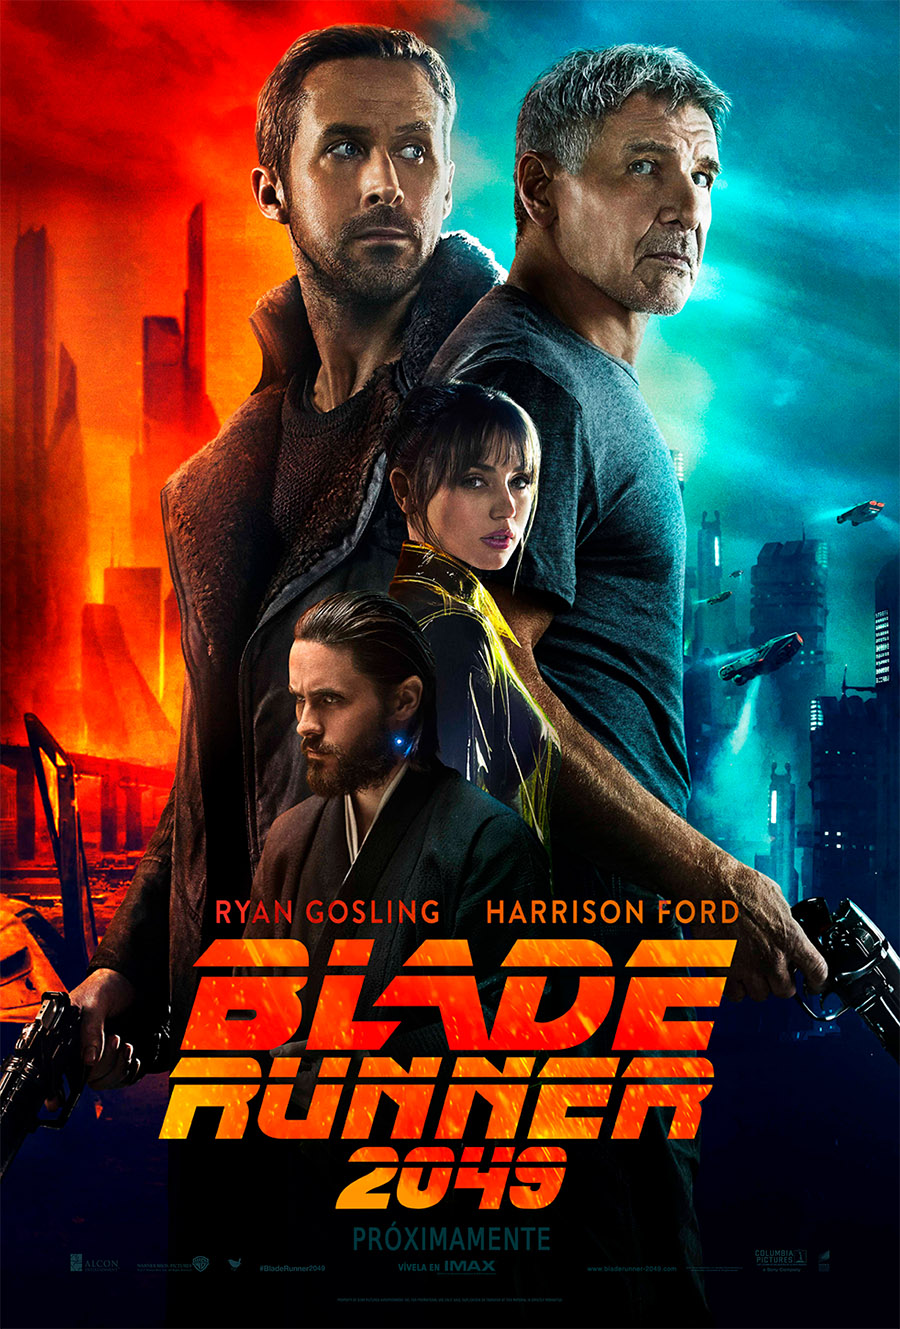 https://www.andesfilms.com.pe/blade-runner-2049/